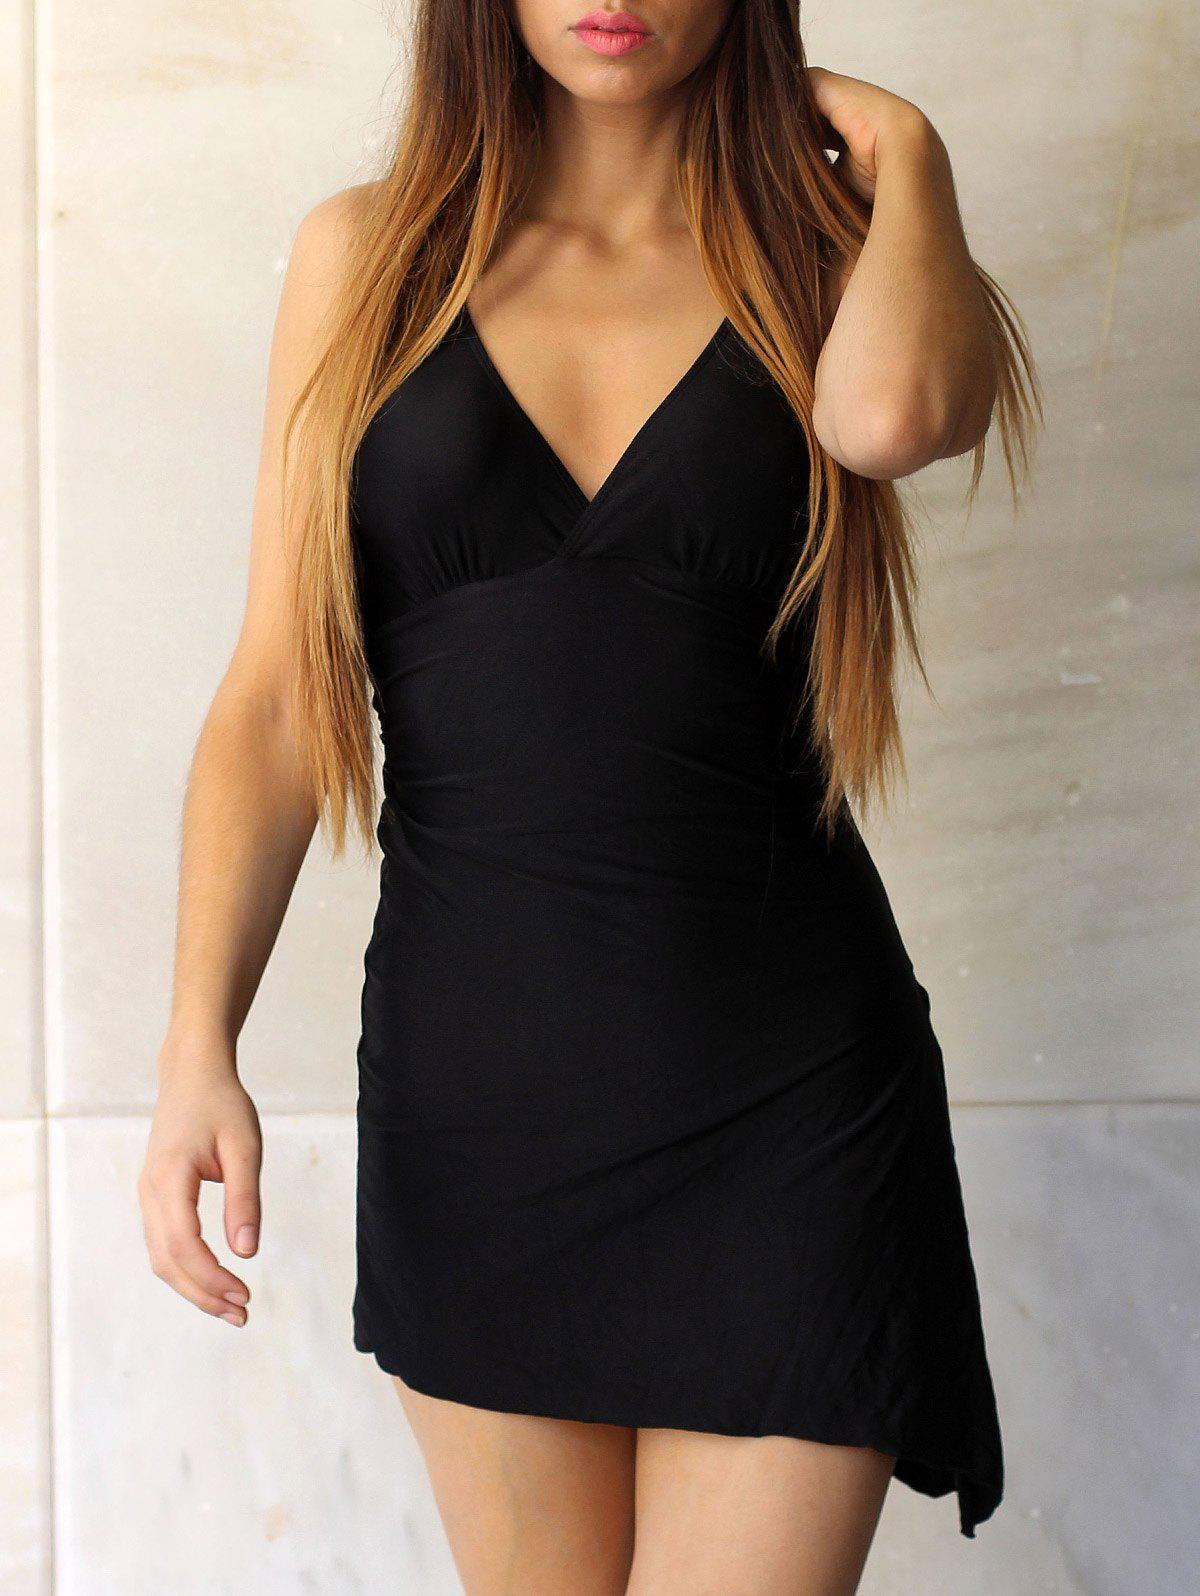 Alluring Women's Plunging Neck Sleeveless Black One-Piece Swimsuit - BLACK M